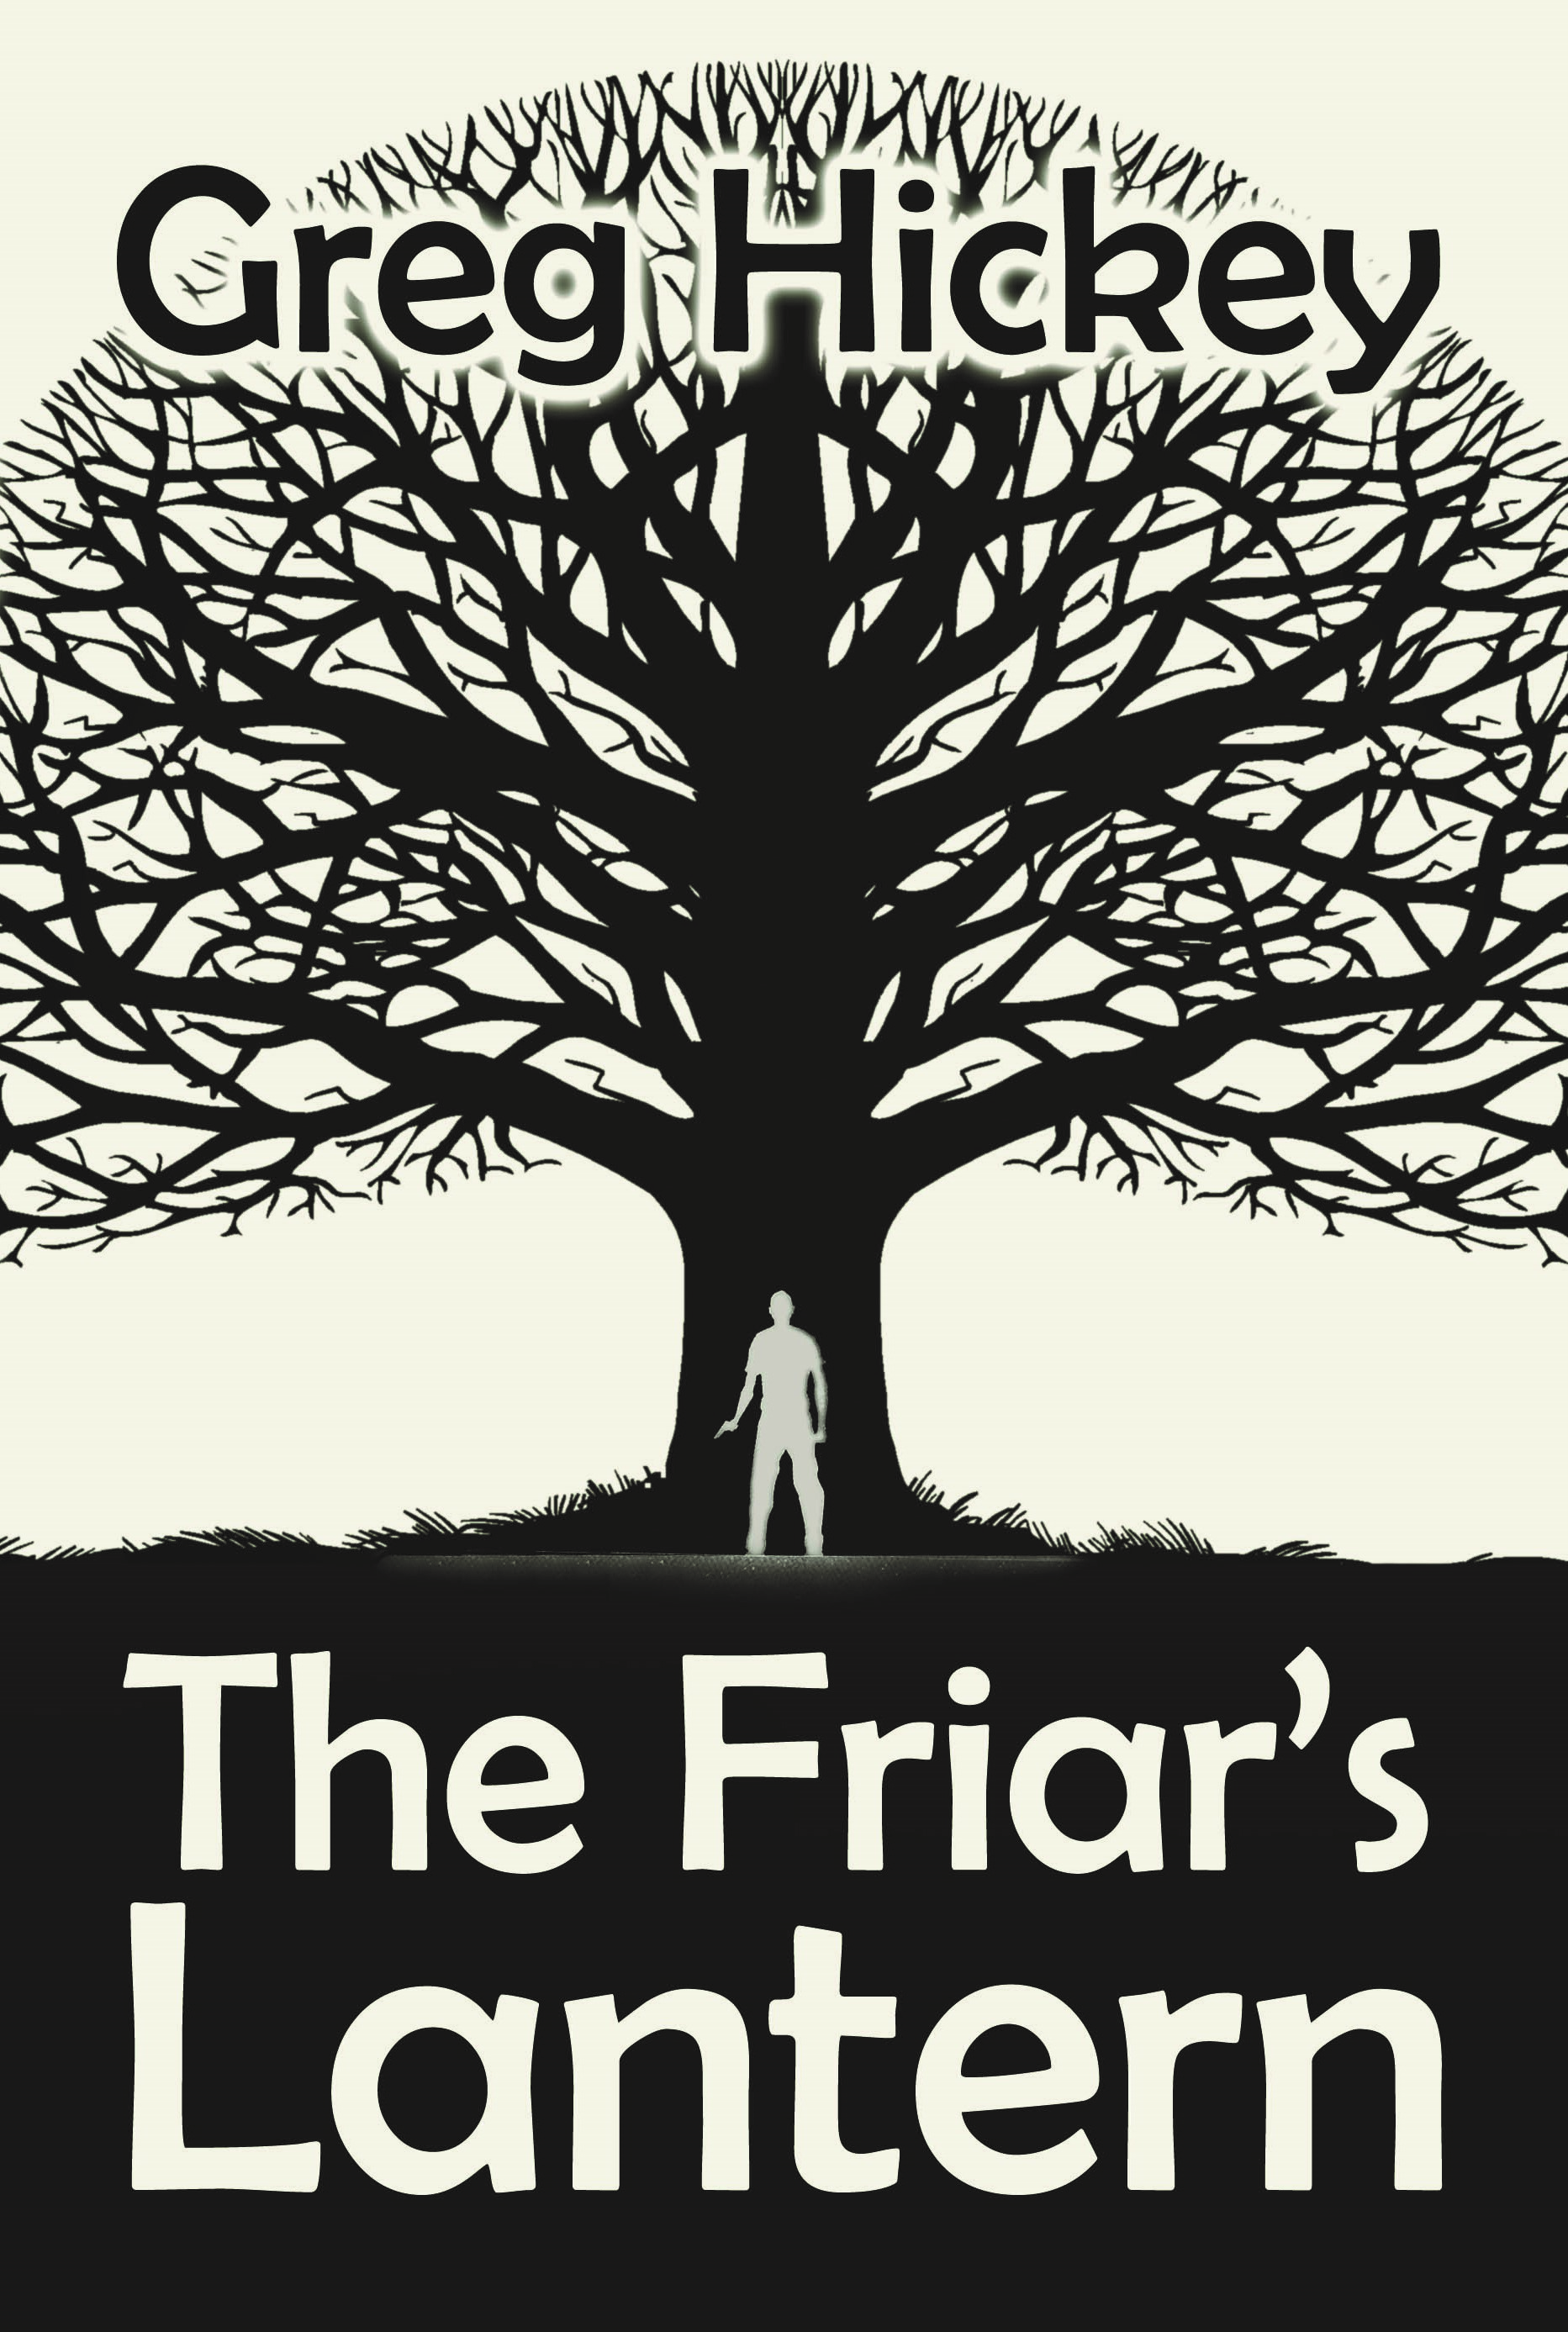 The Friar's Lantern front cover